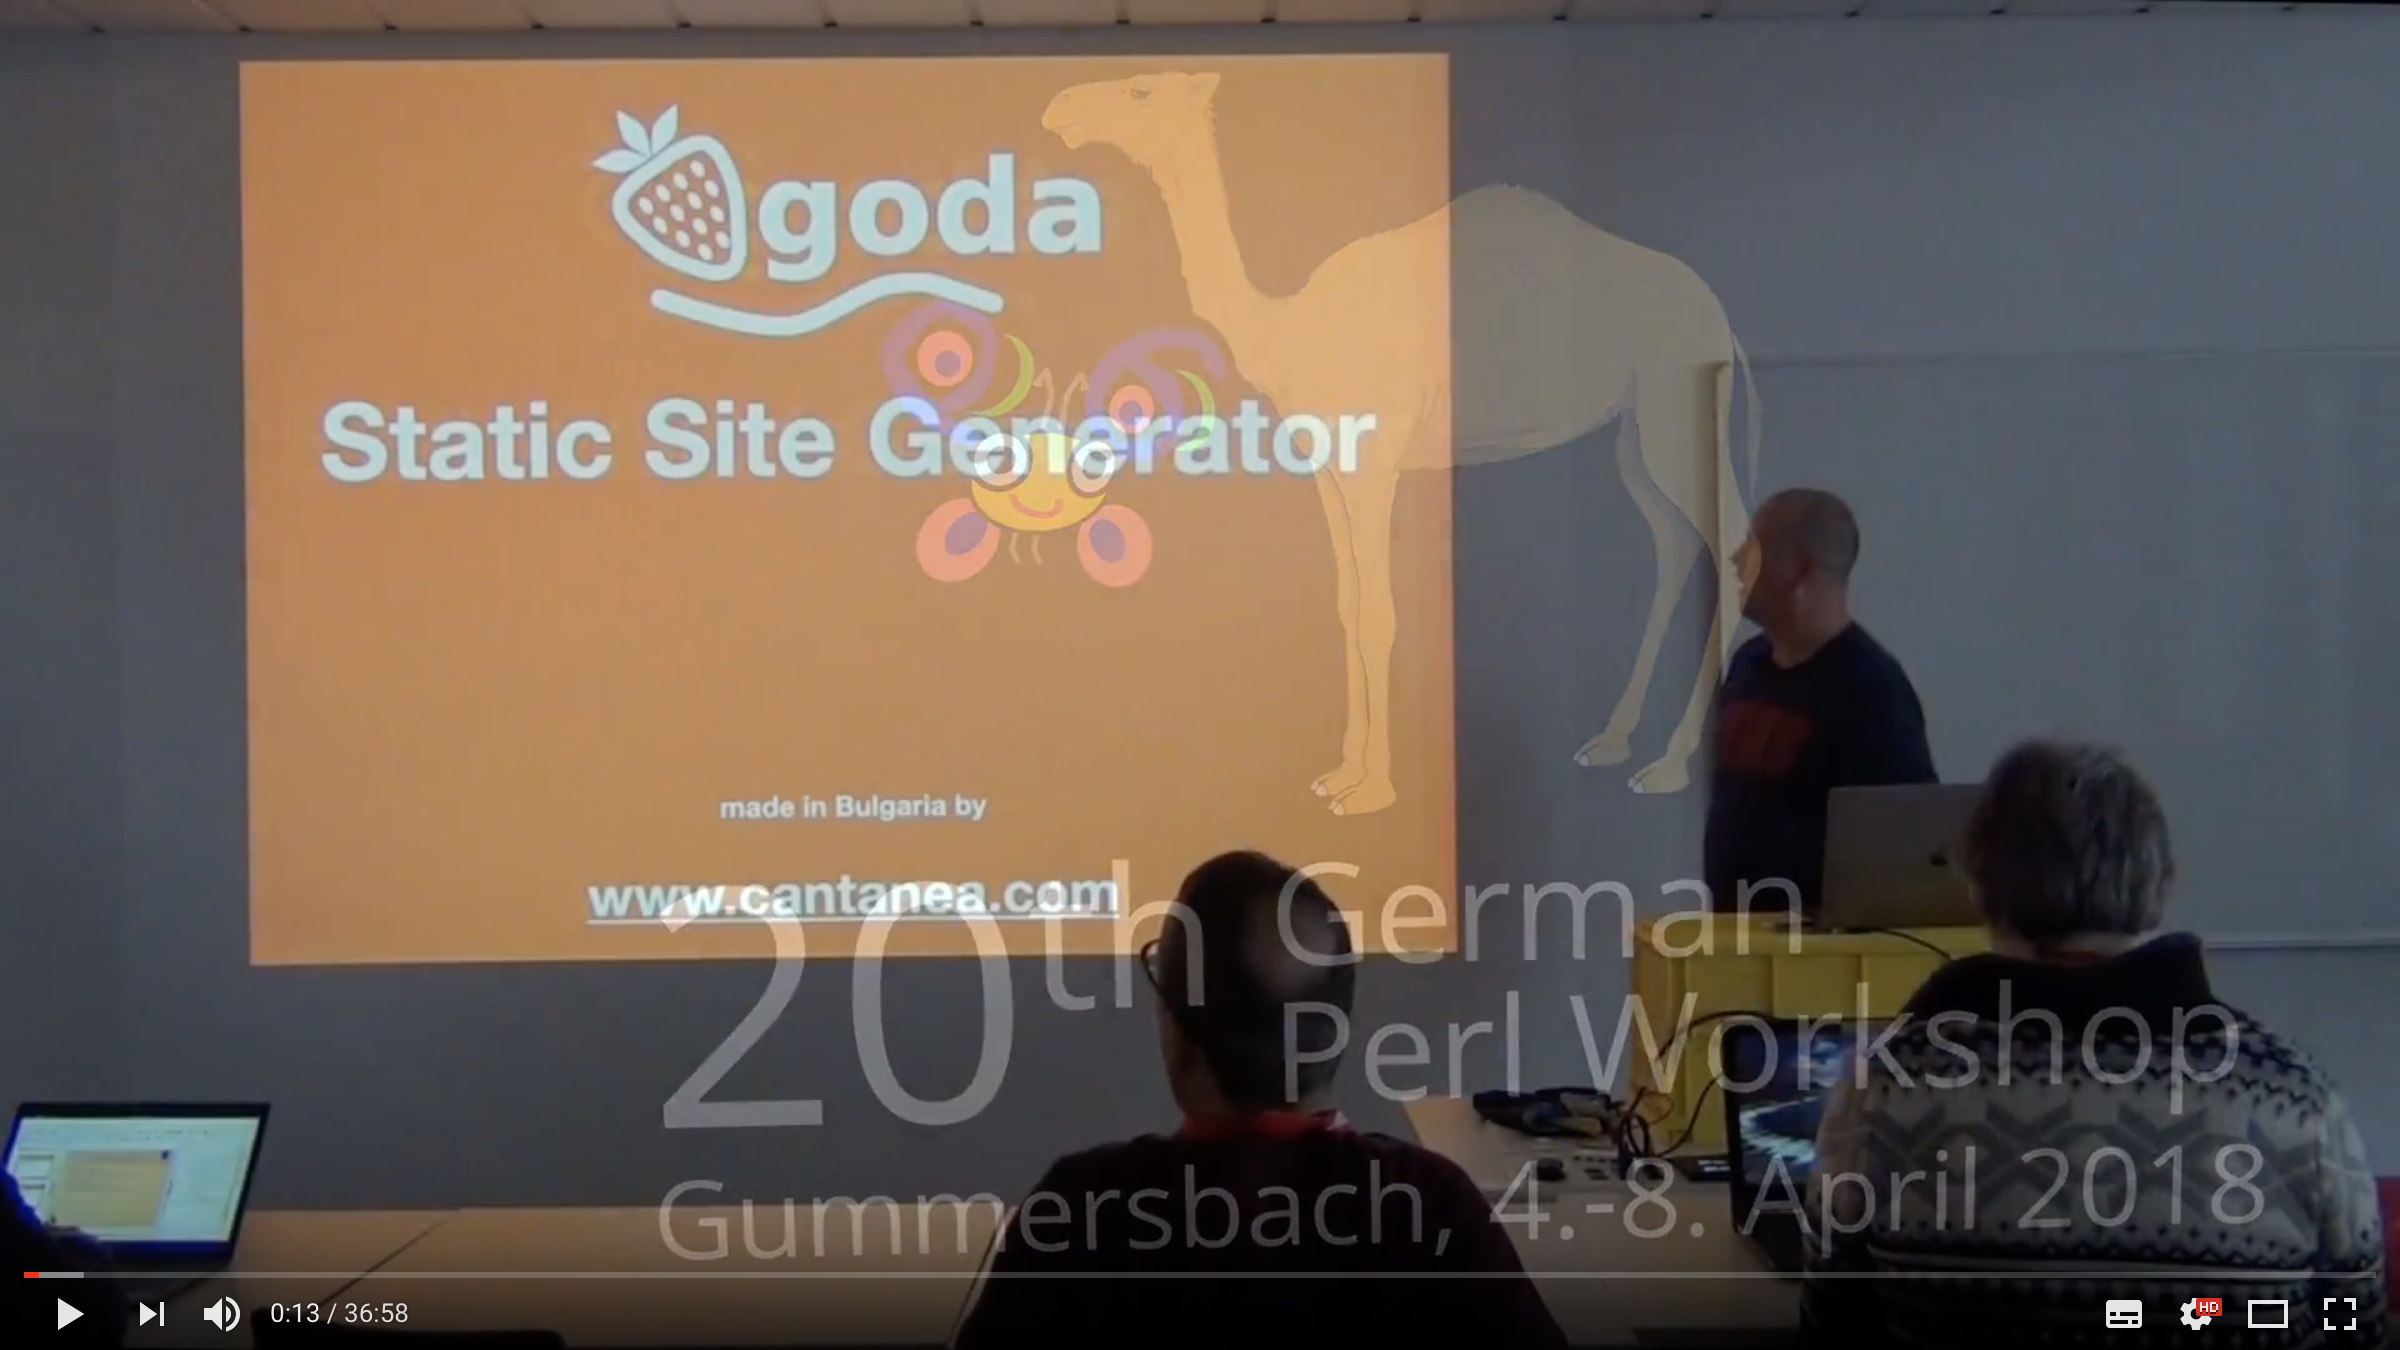 Video of the talk about Qgoda